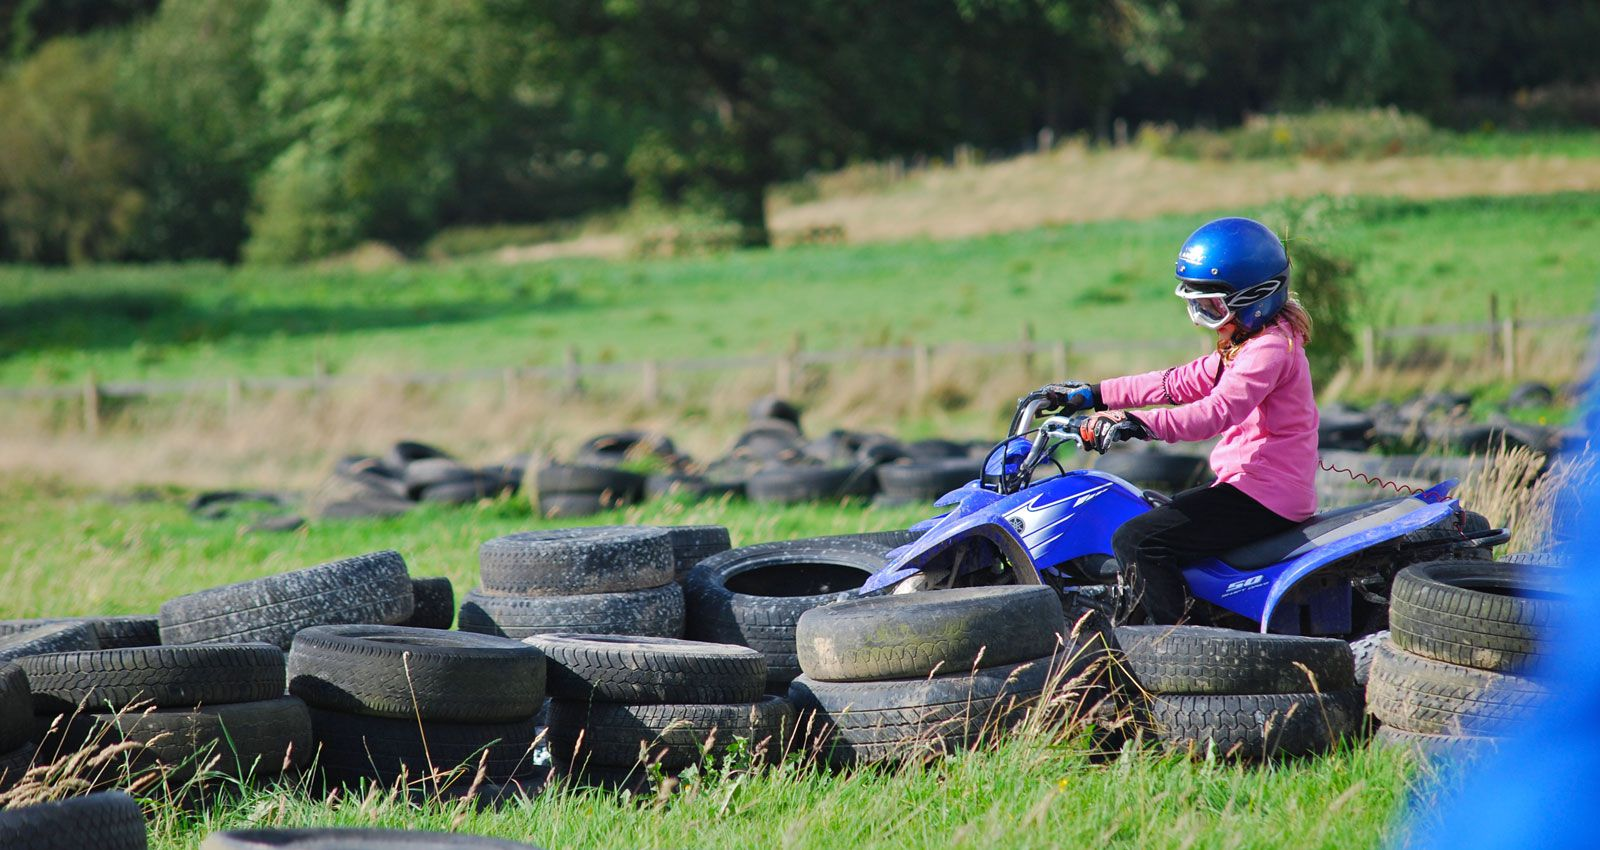 PGL Adventure Holidays - Specialist Holidays for 7-17 year olds across the UK and France - Action and Adventure - Motorsports Pro